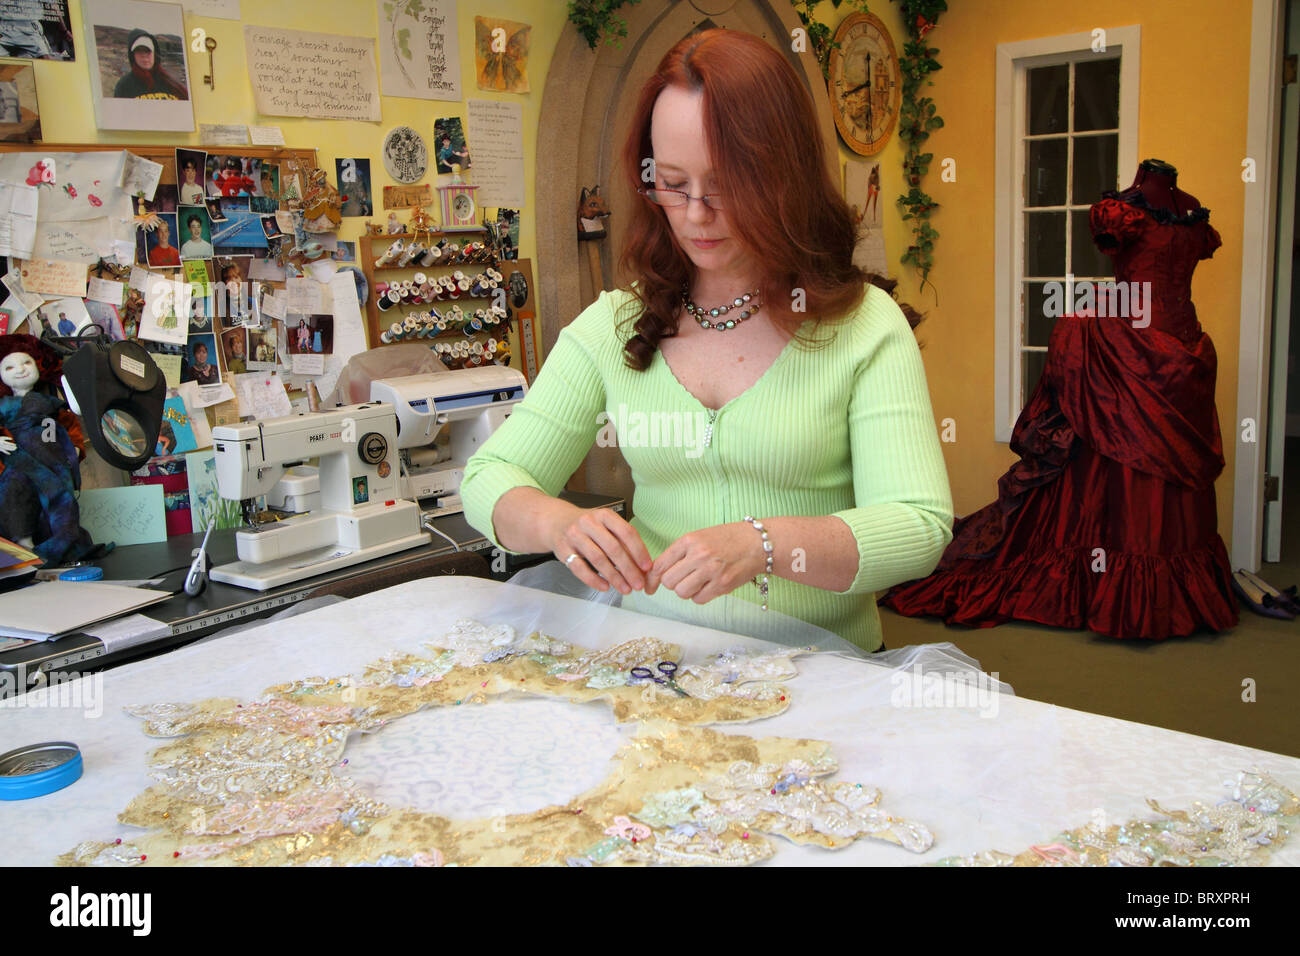 Seamstress sewing in seamstress shop with gowns and materials - Stock Image